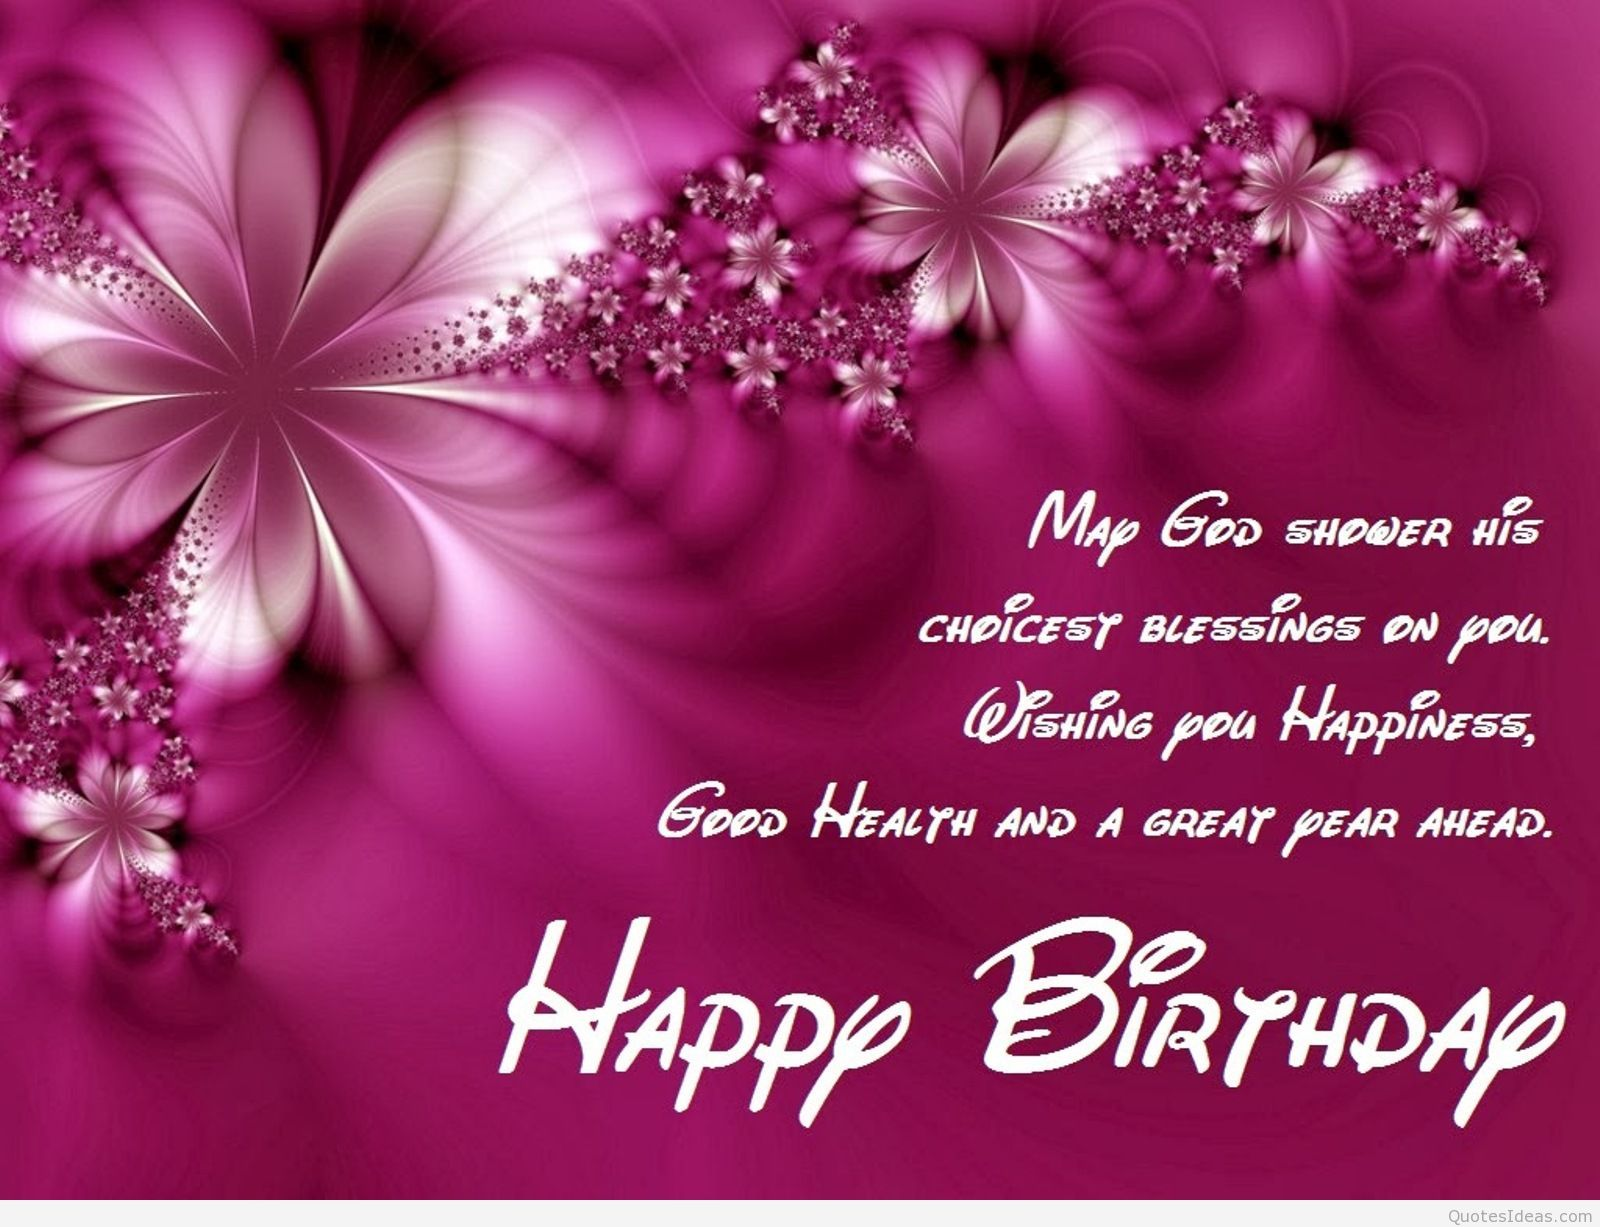 Amazing quotes for your sister or your best friend – Happy Birthday Greetings for Sister